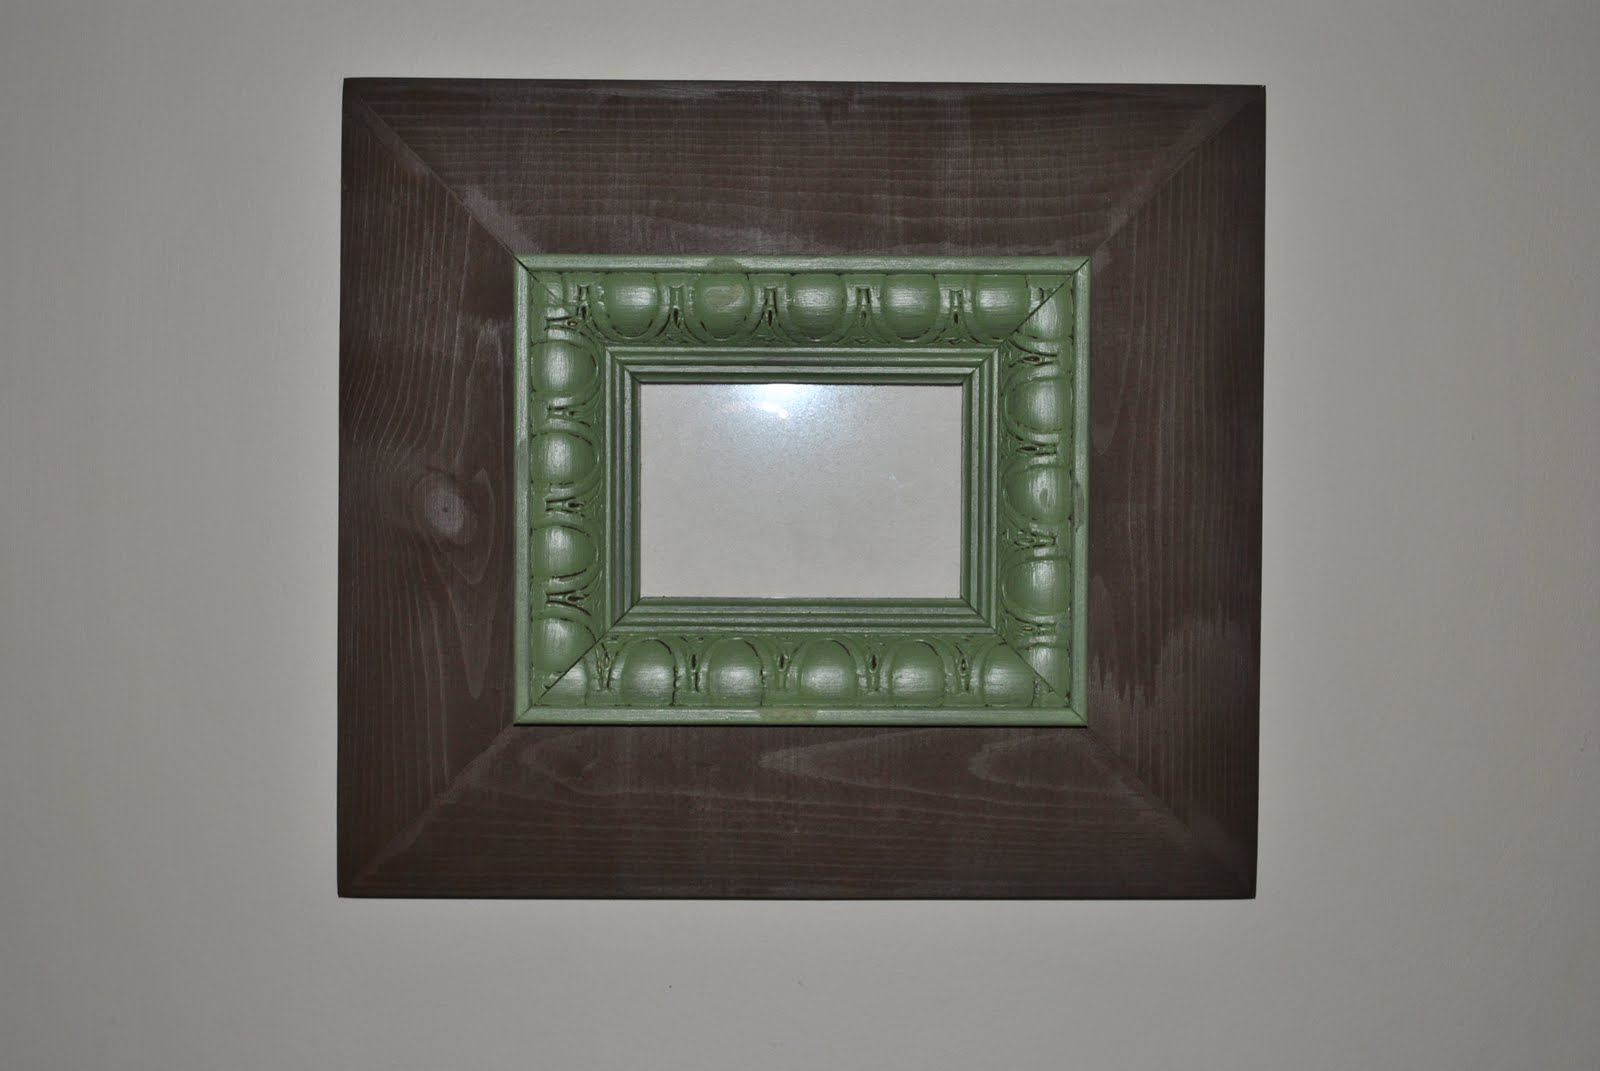 Travel home brown with green trim picture size 5x7 overall frame size 15x17 50 jeuxipadfo Gallery